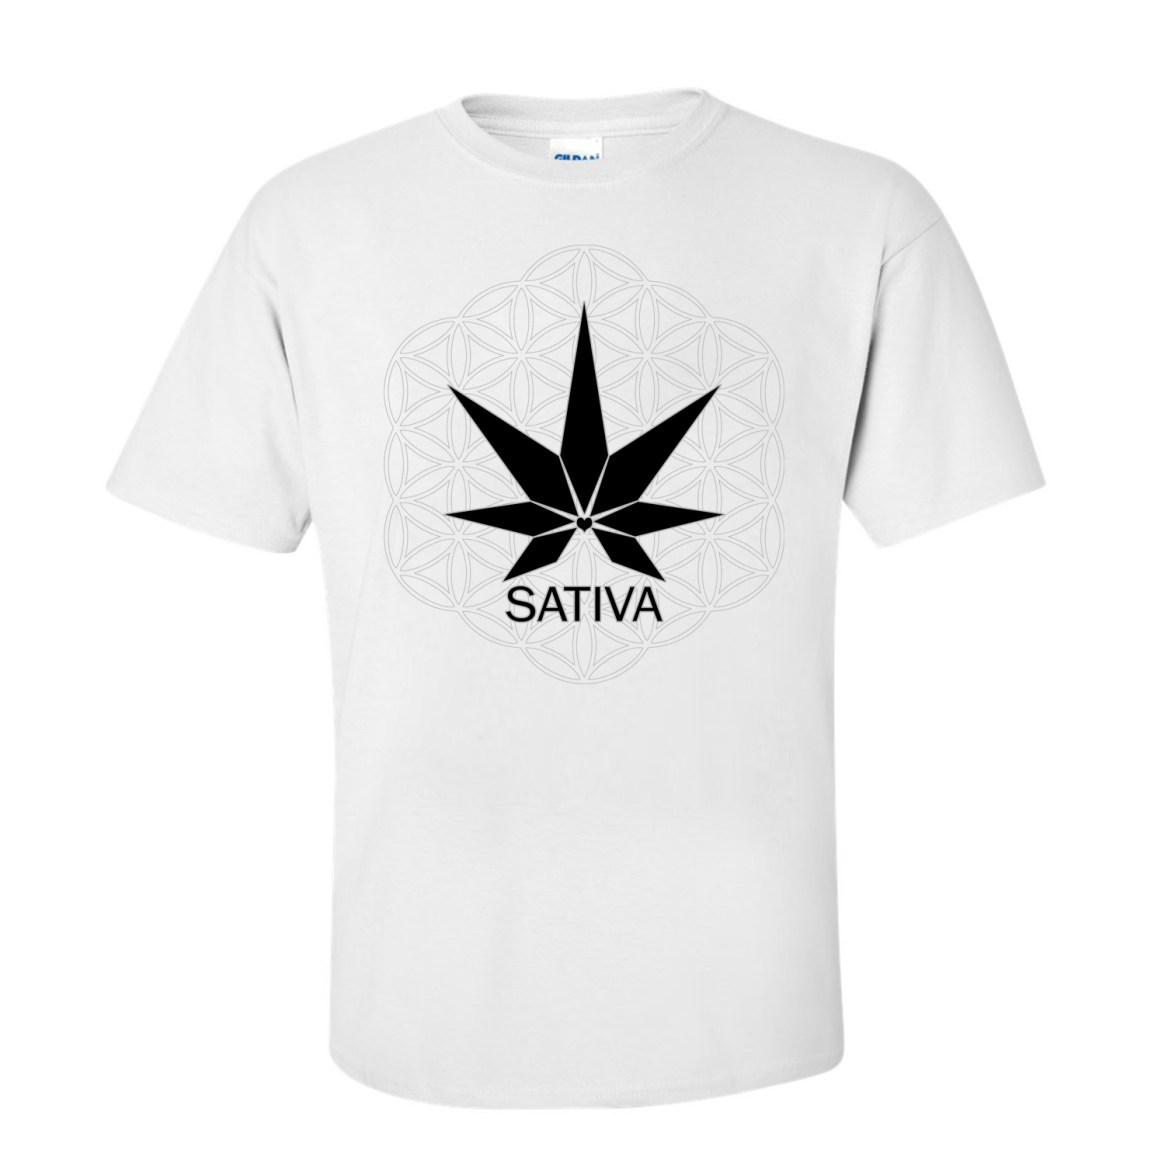 h3mp shirts_SATIVA